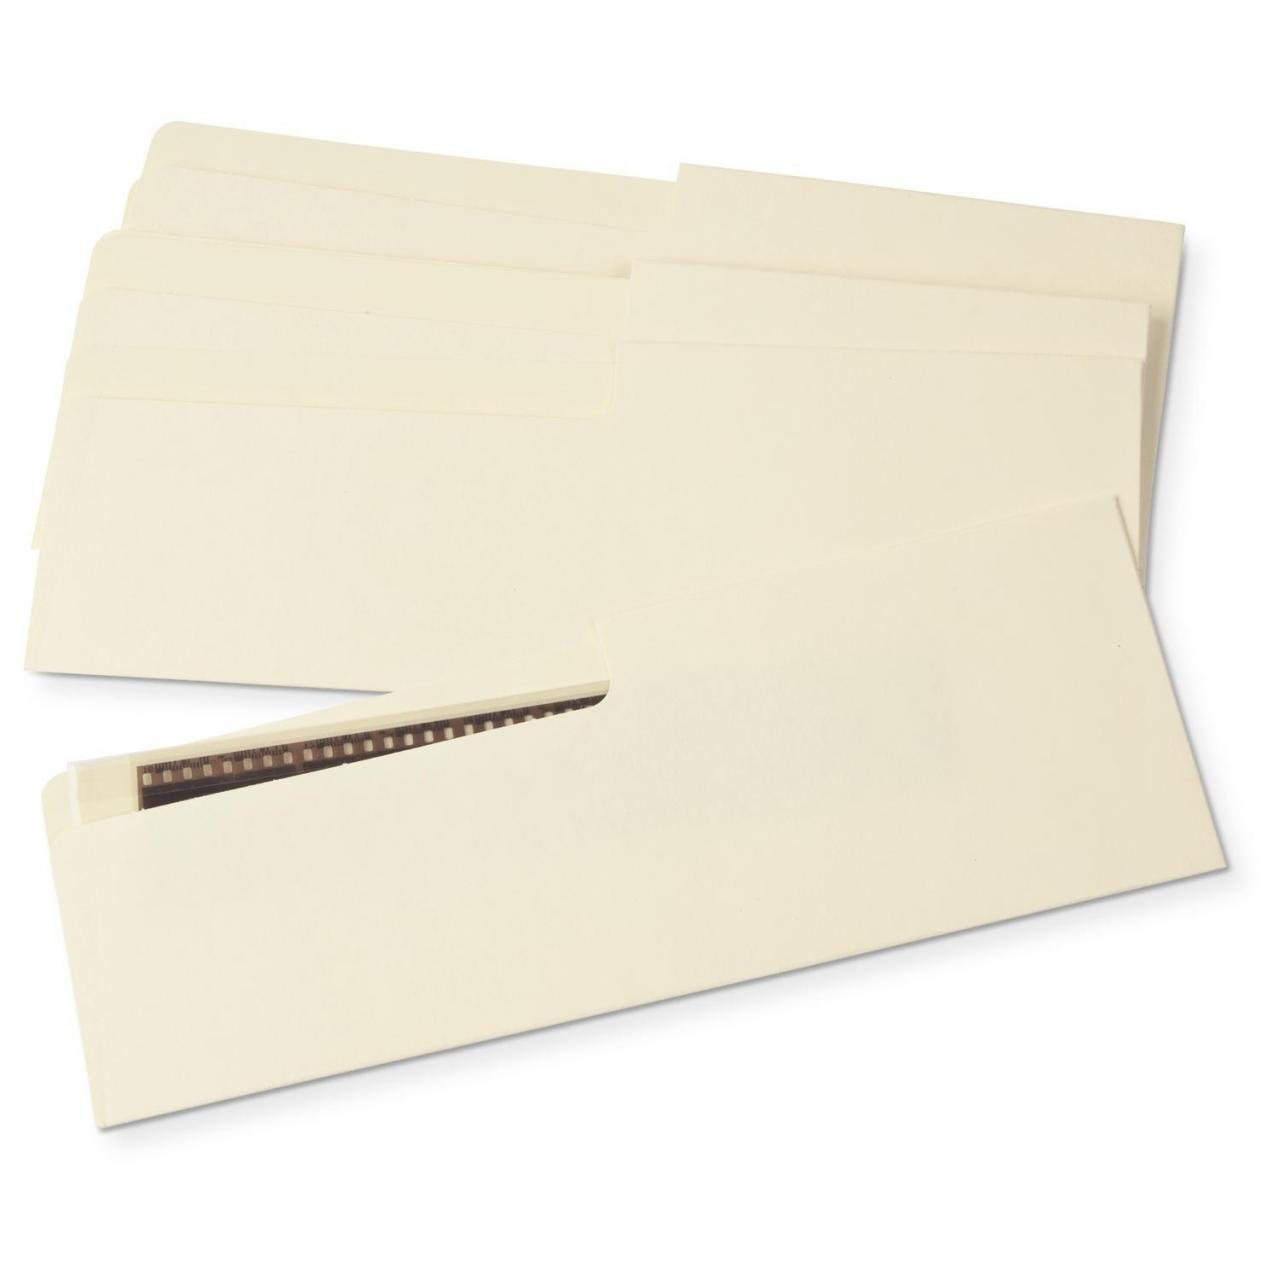 Gaylord Archival 80 lb. Buffered Text Negative Strip Envelopes (50-Pack)